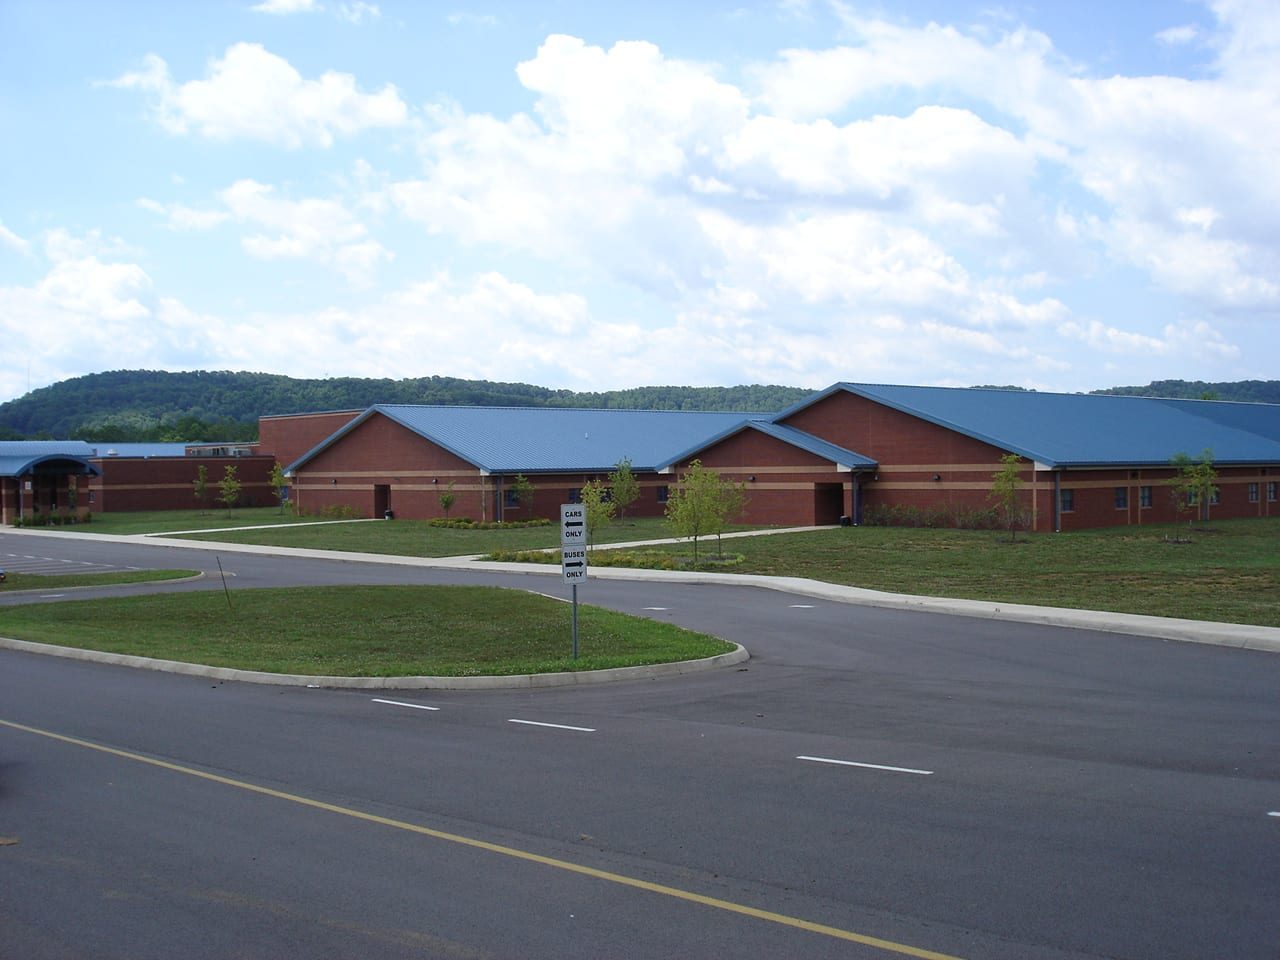 Brickey Elementary School